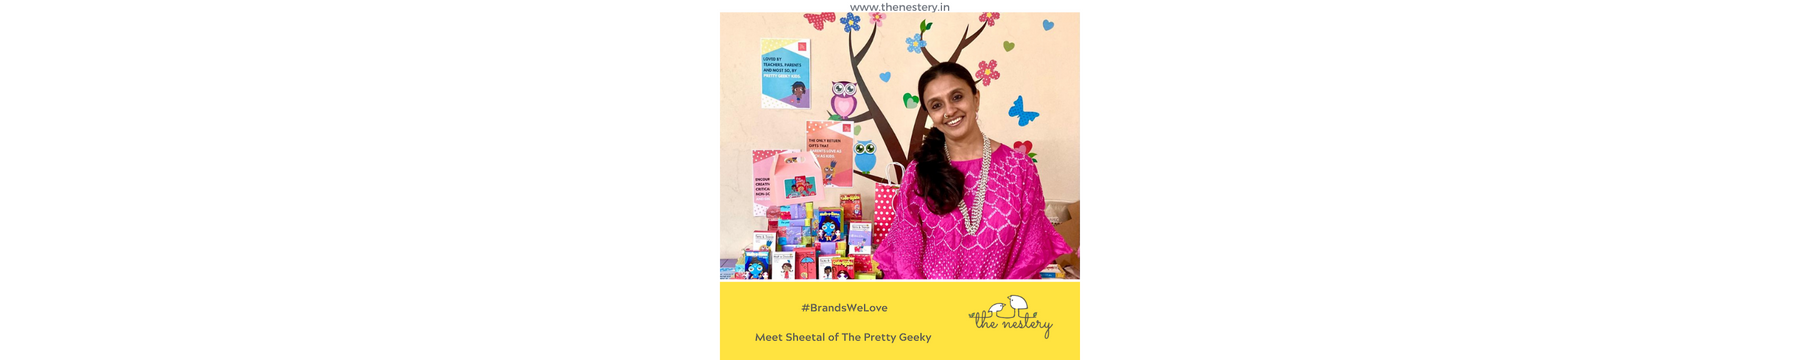 "In Conversation with the Brands We Love -  Meet Sheetal of ""The Pretty Geeky"""